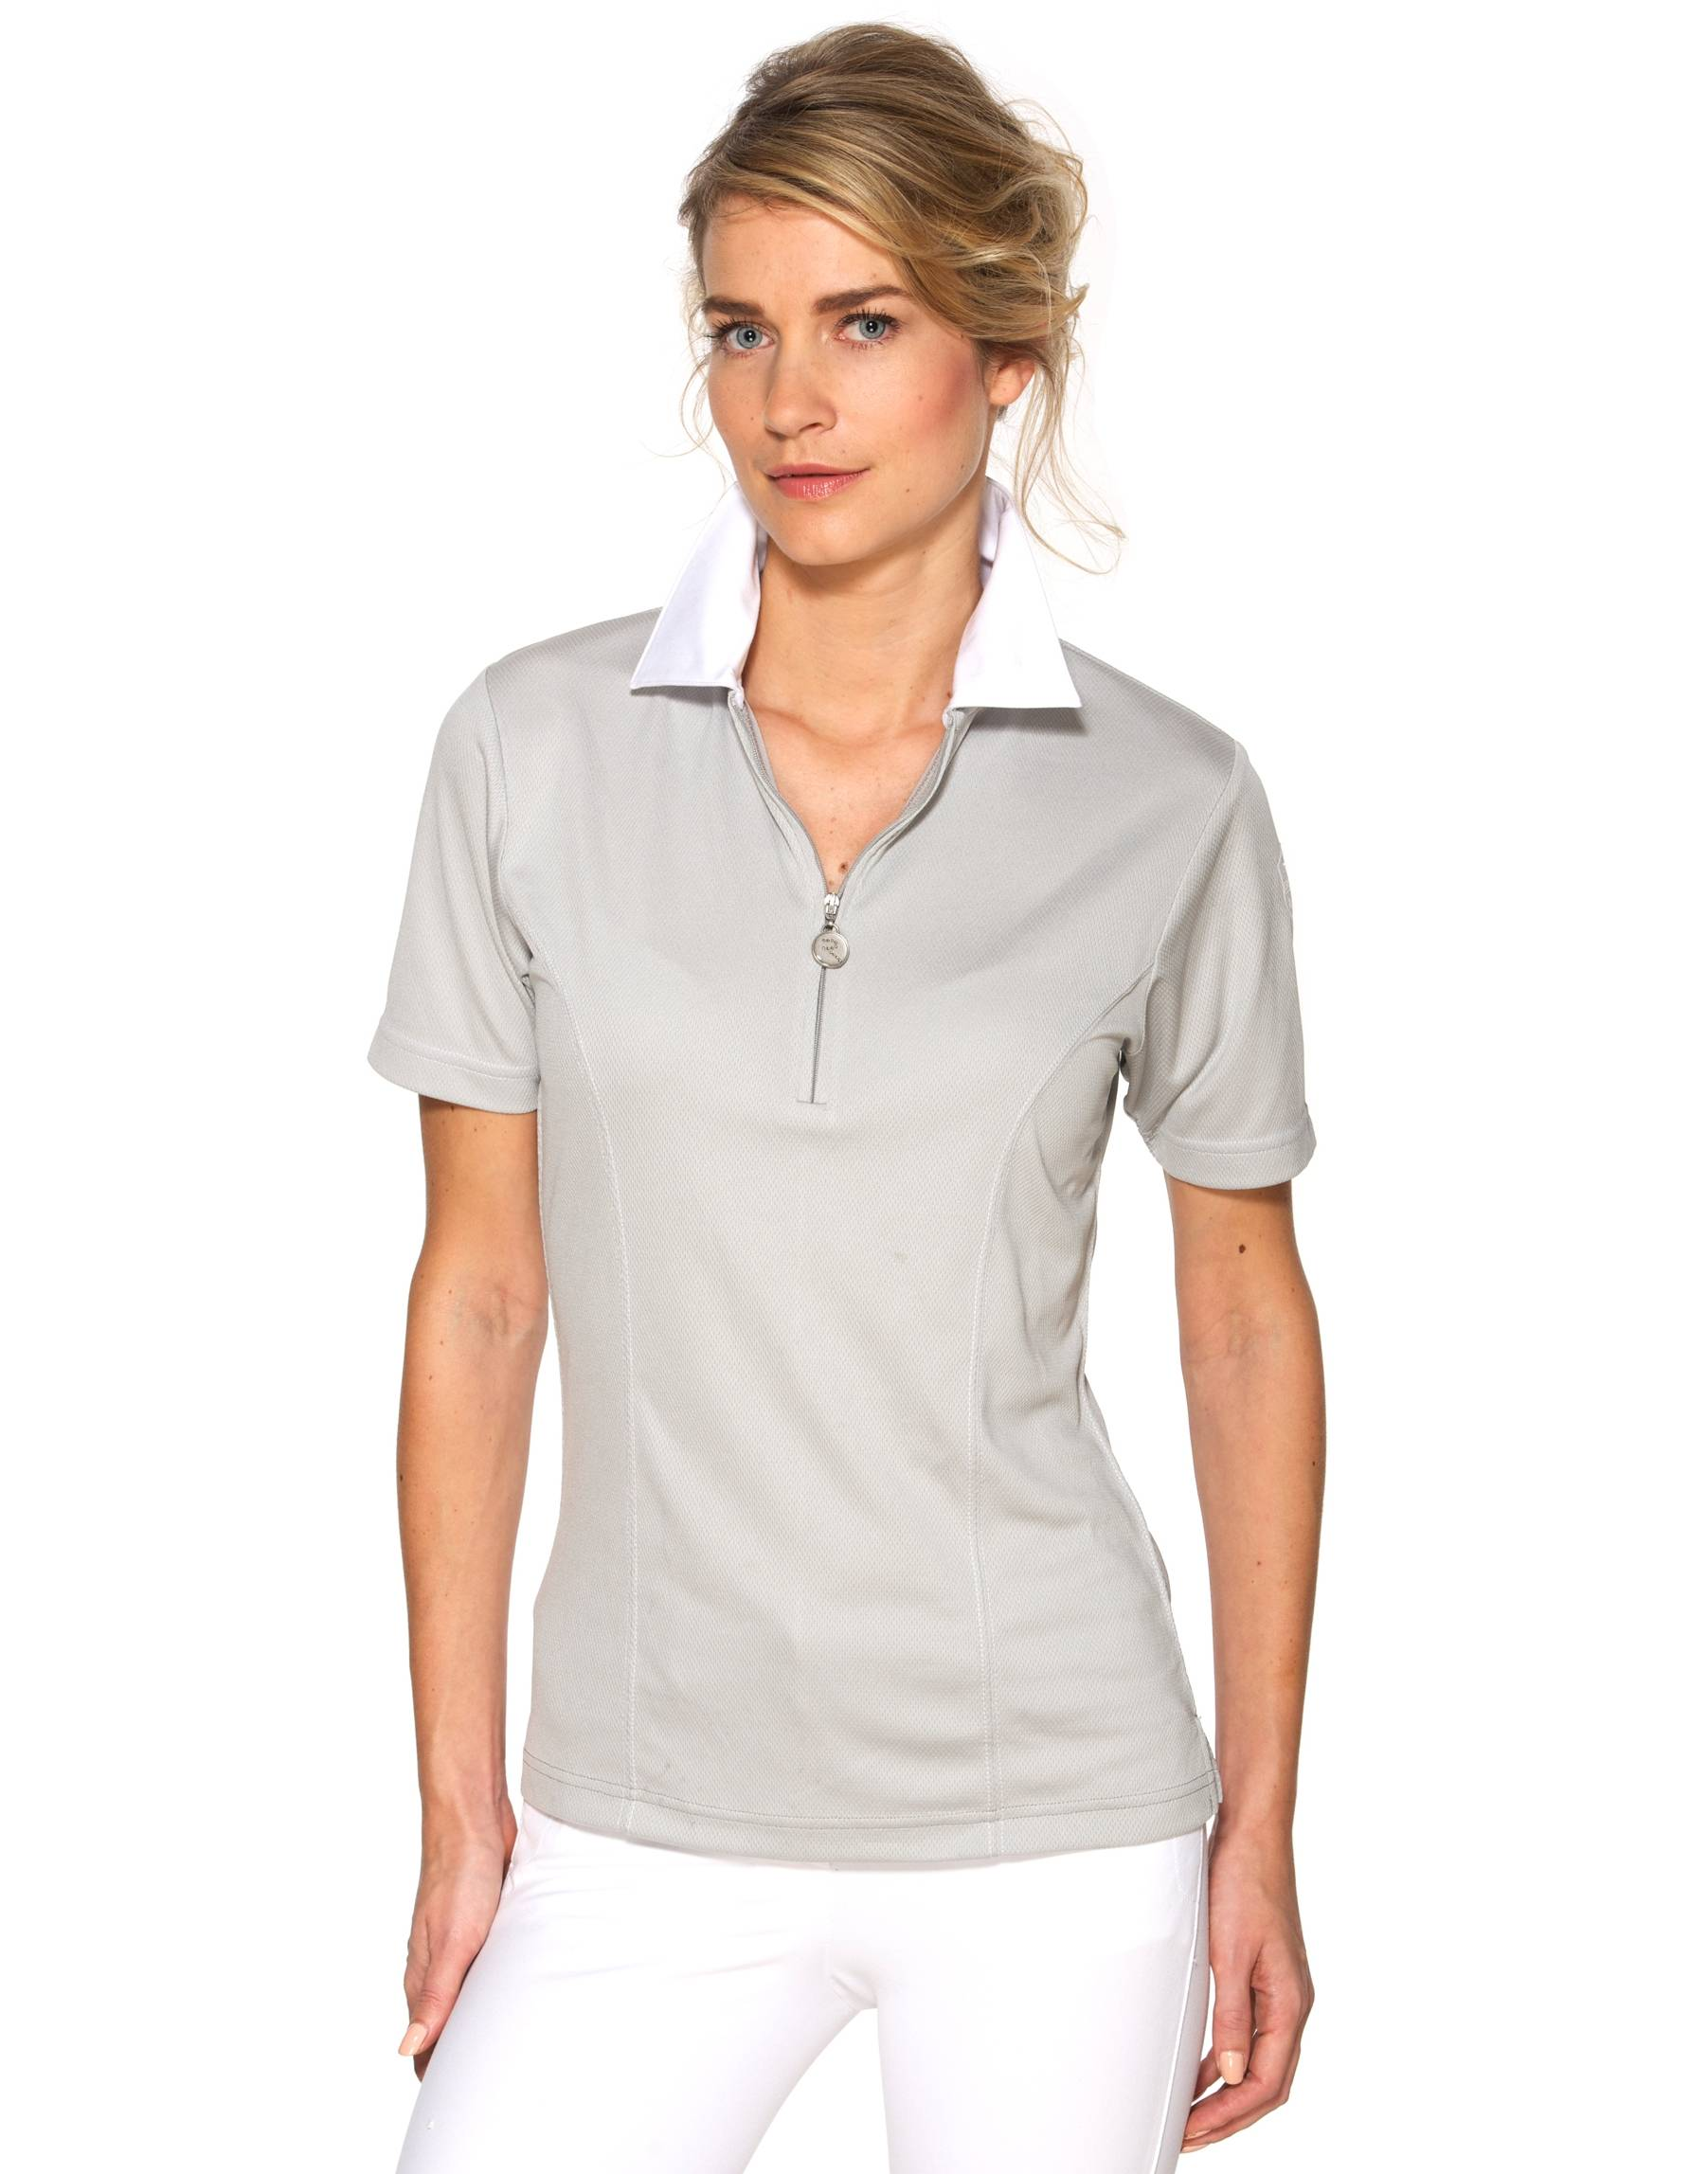 Gersemi Gisela Functional Shirt - Ladies - Granite